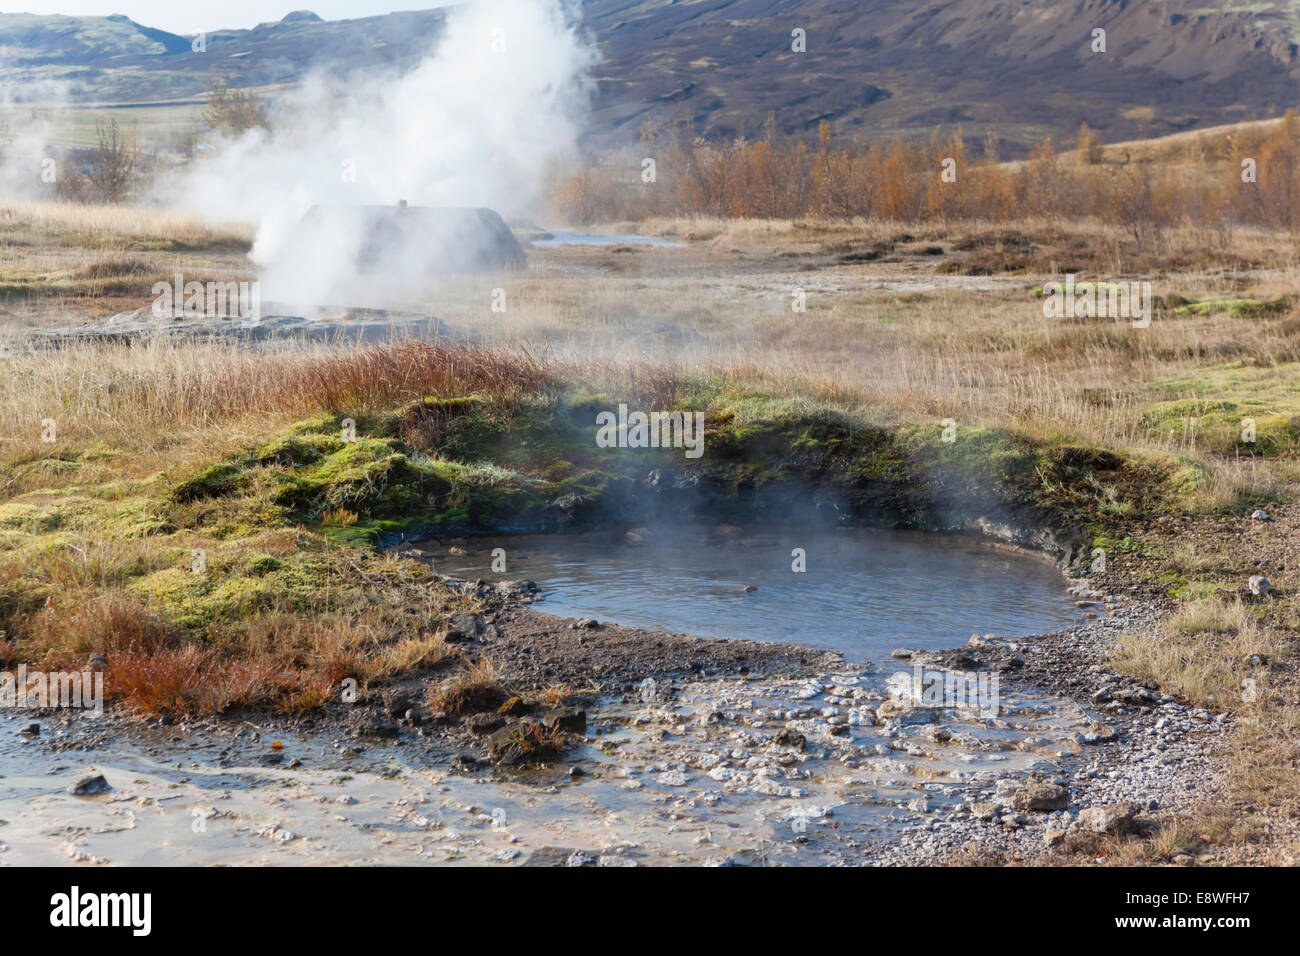 Steam vents and pools of boiling water bubble away across Iceland's Great Geysir site - Stock Image